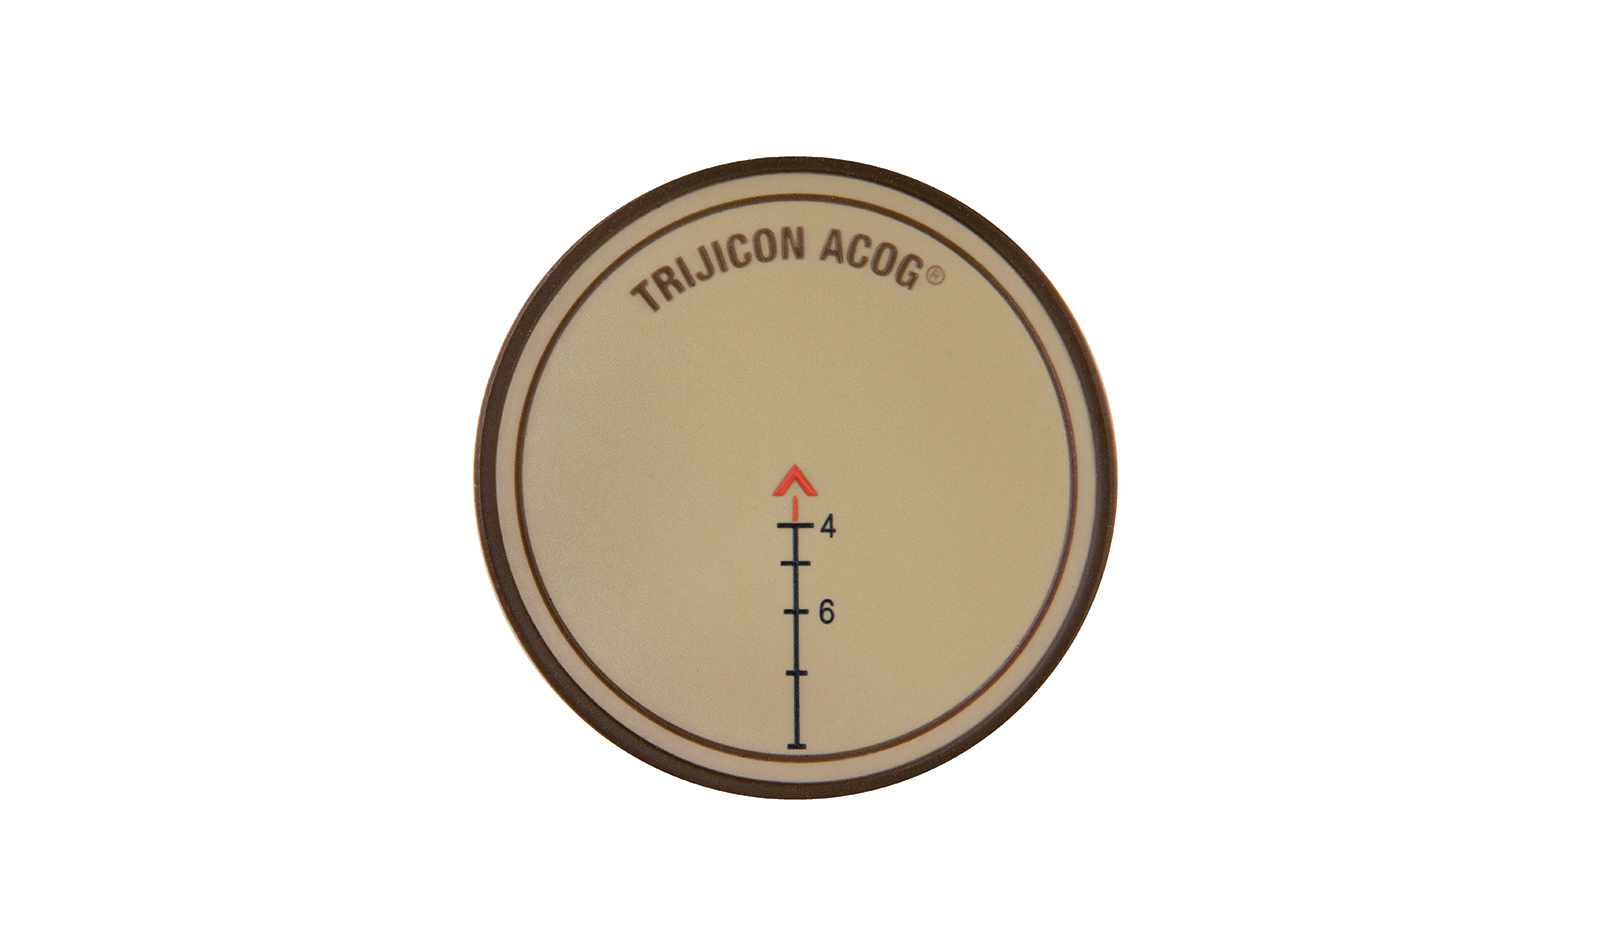 Trijicon ACOG<sup>®</sup> Chevron Reticle Patch